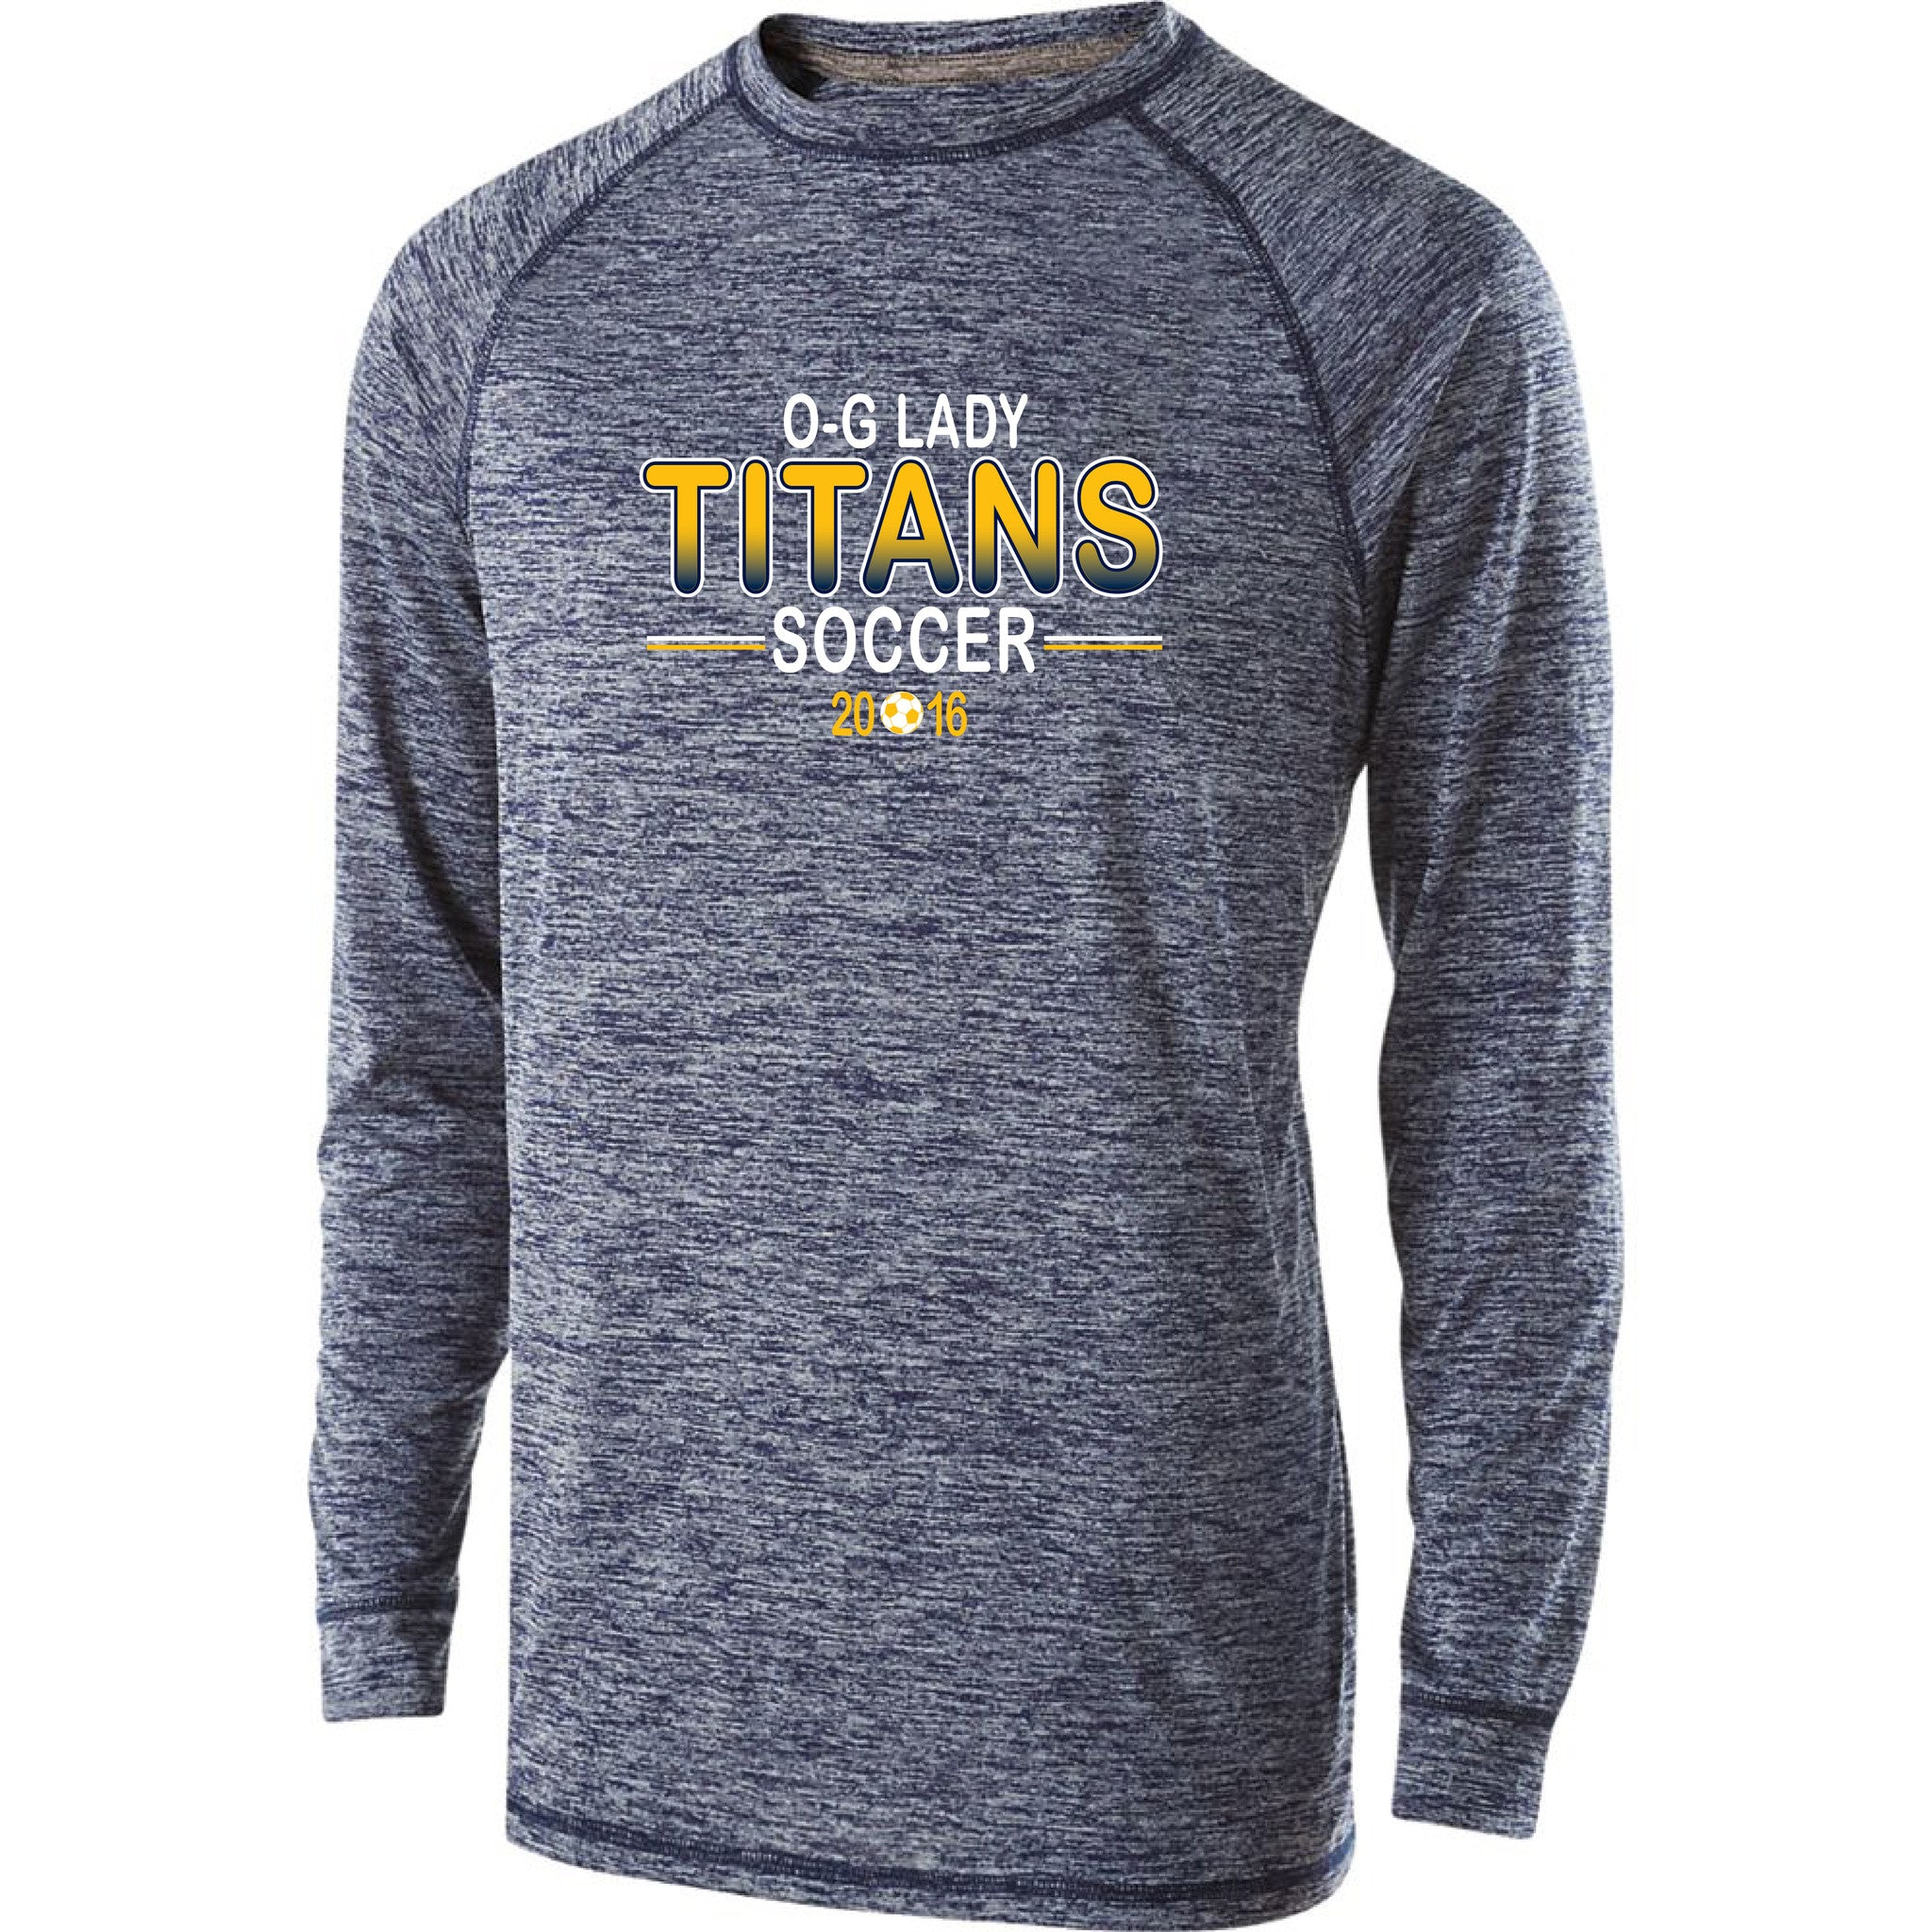 Youth Lady Titans Soccer Electrify Performance LS Shirt - Navy